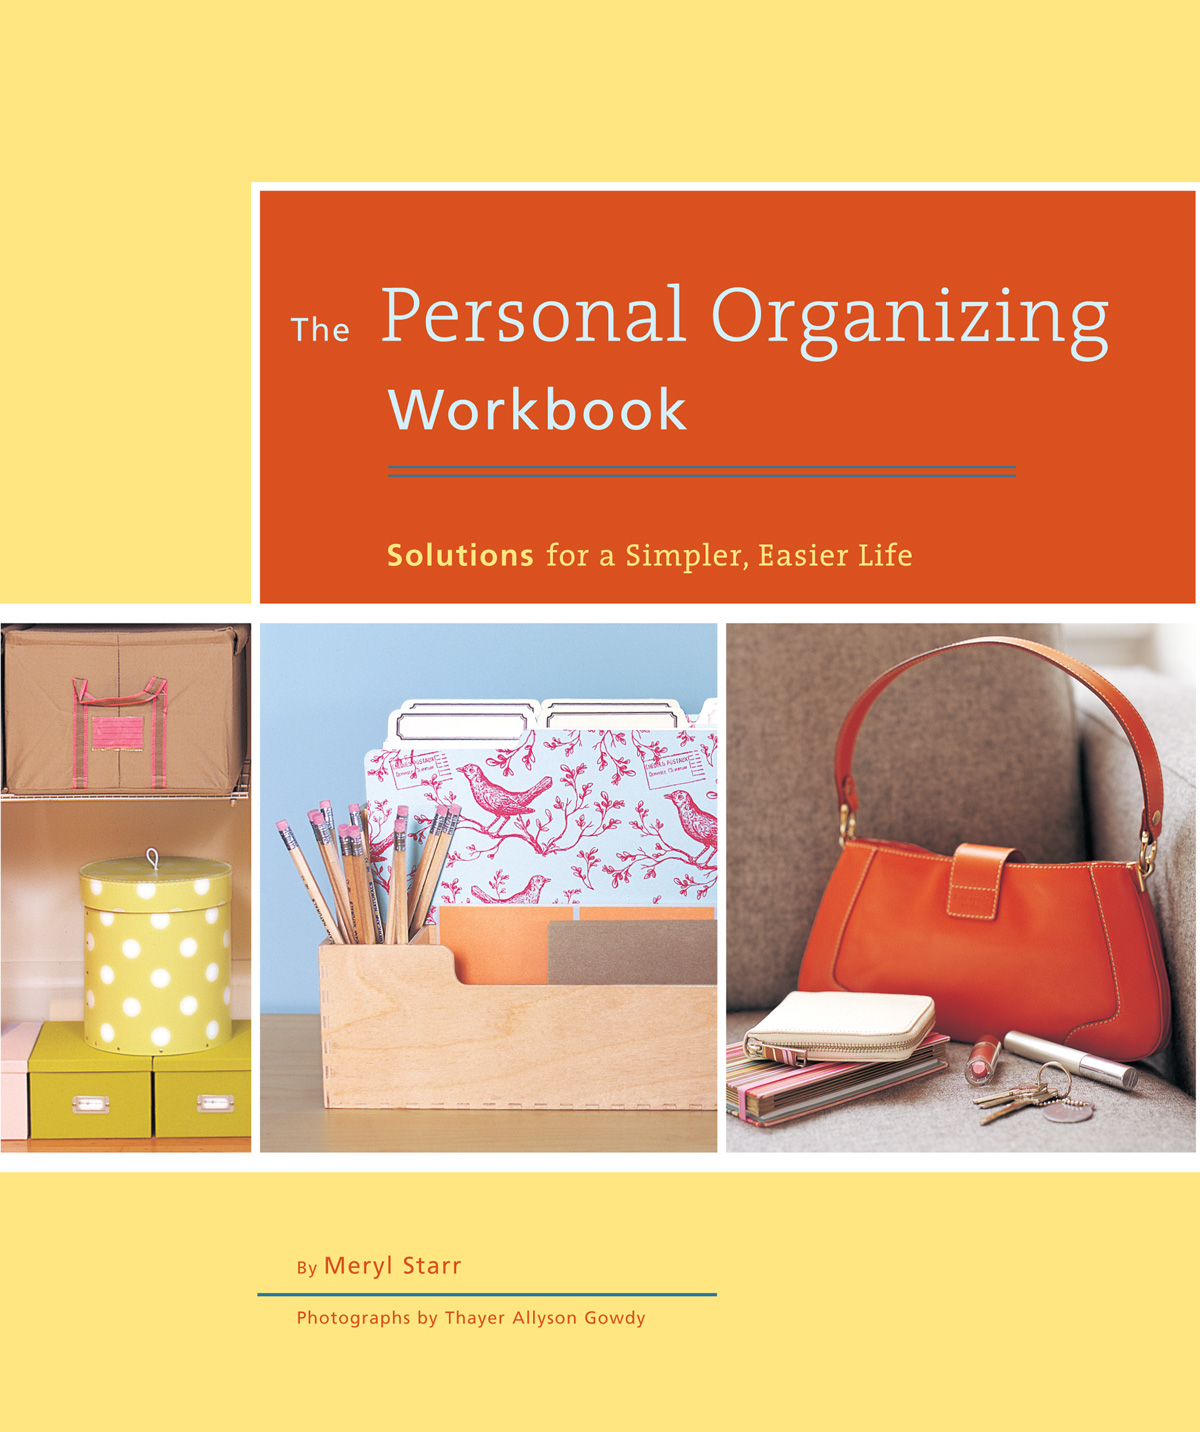 The Personal Organizing Workbook By: Meryl Starr